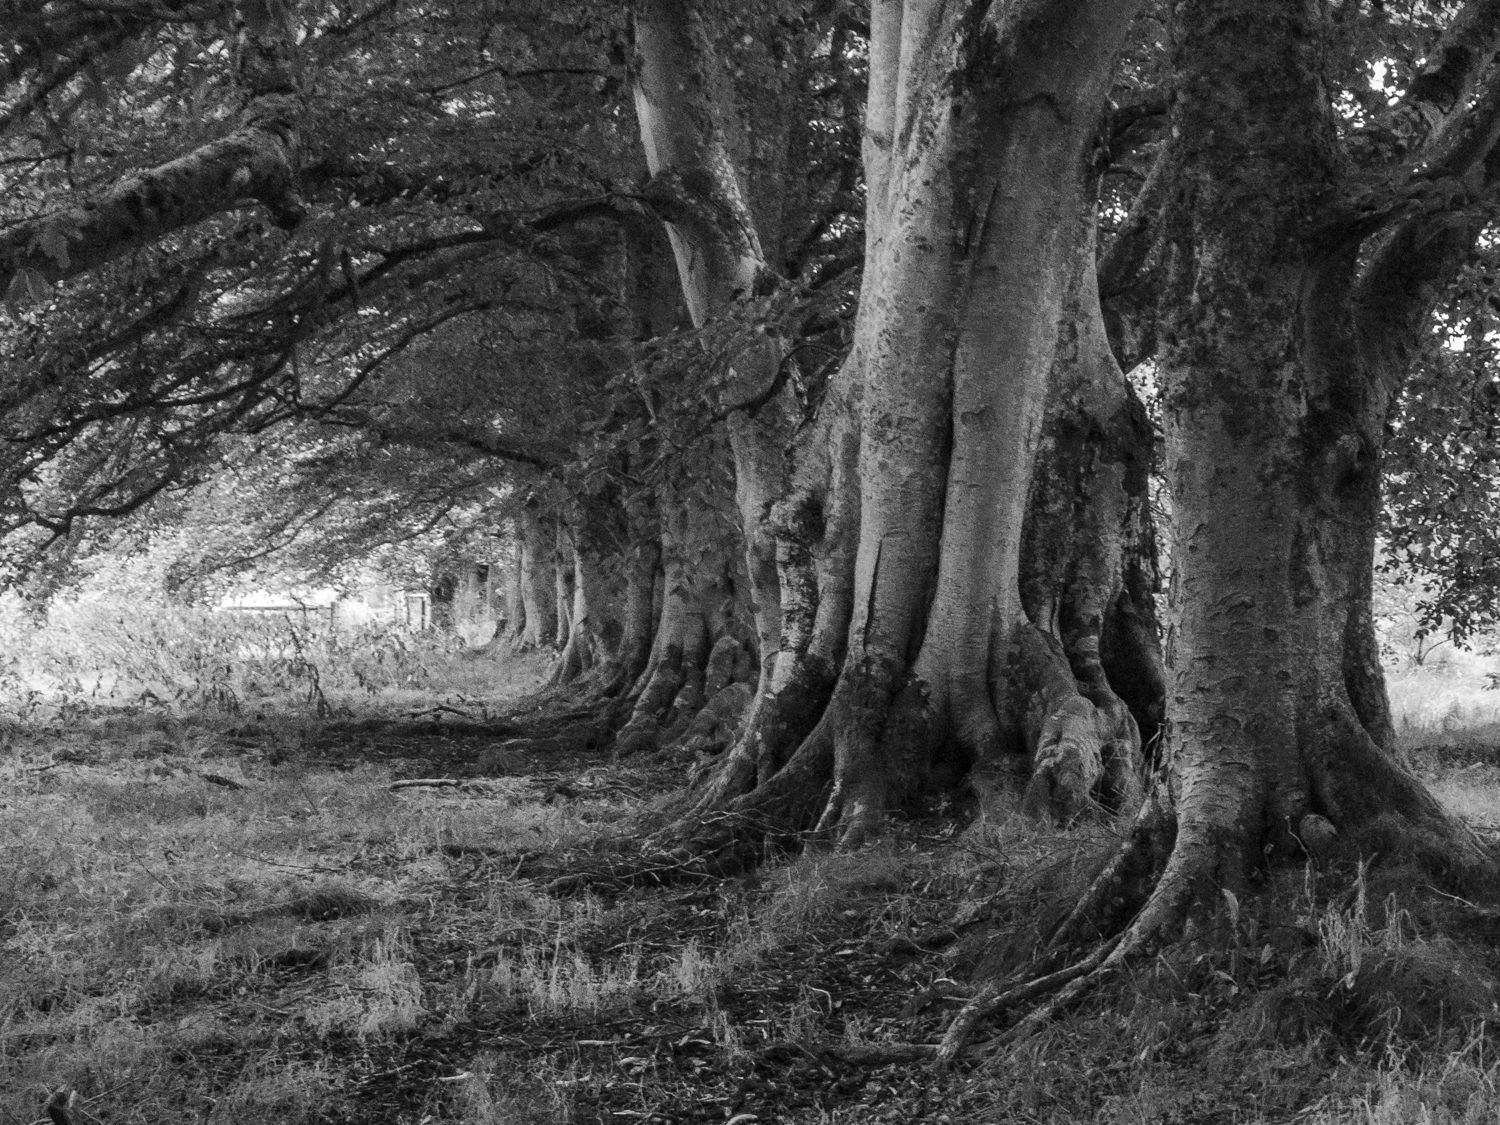 trees inverin landscape photography stuart coleman